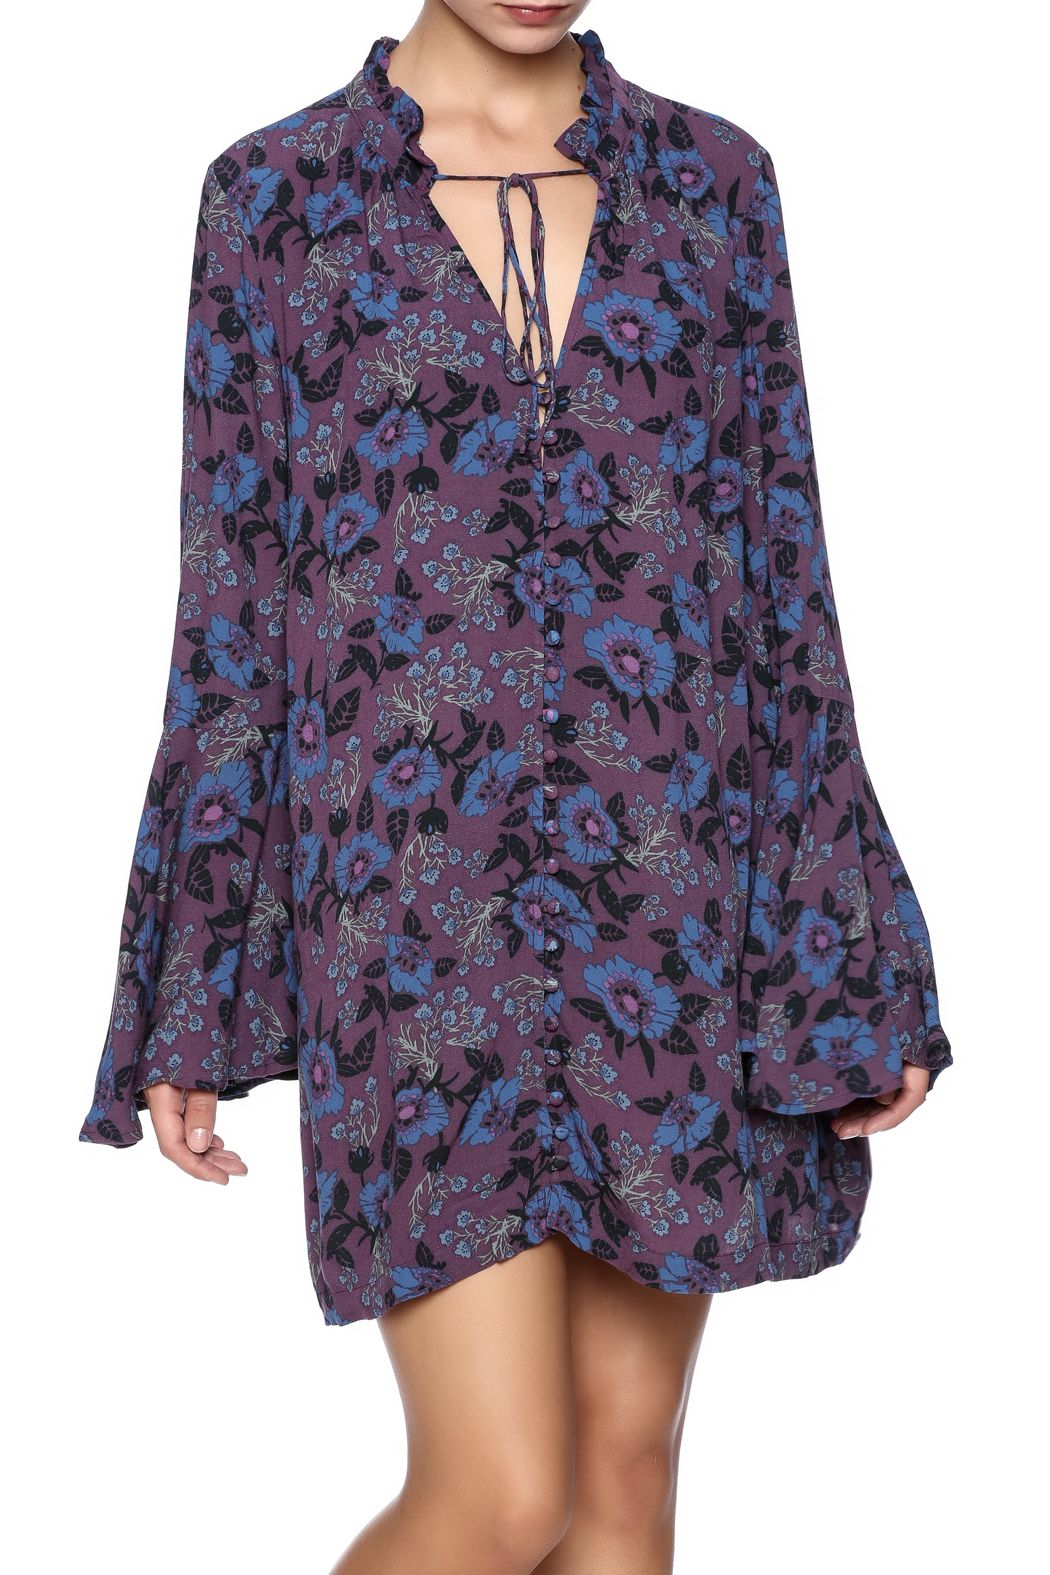 Free People Mystery Printed Tunic